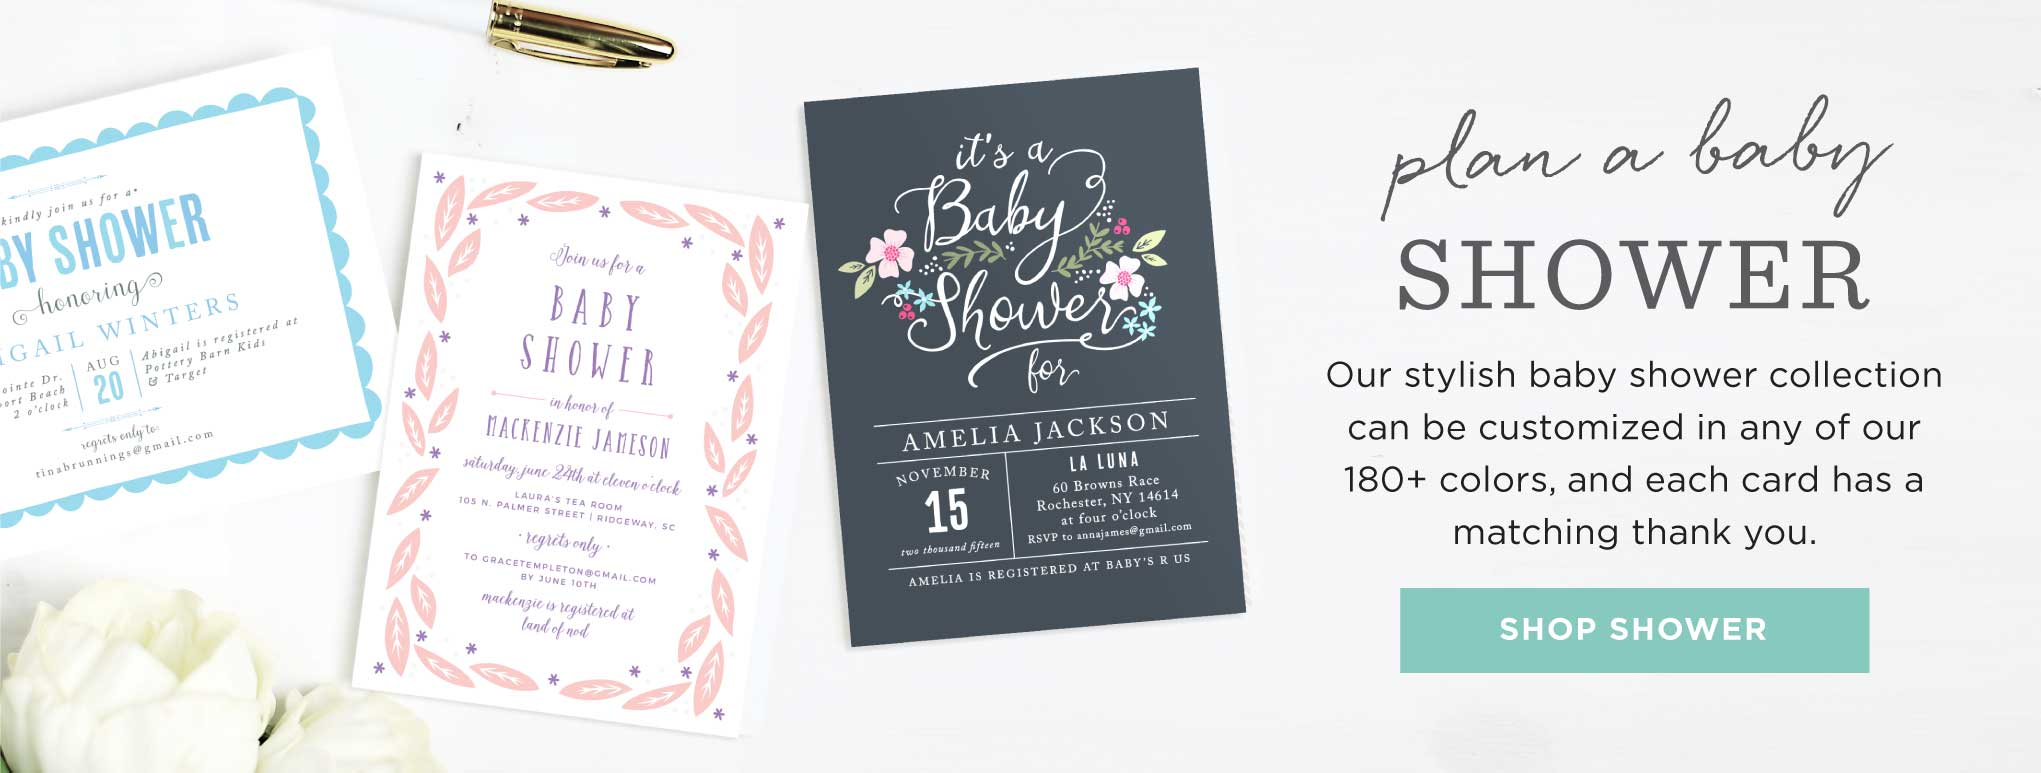 a74b192736d Baby Shower Invitations